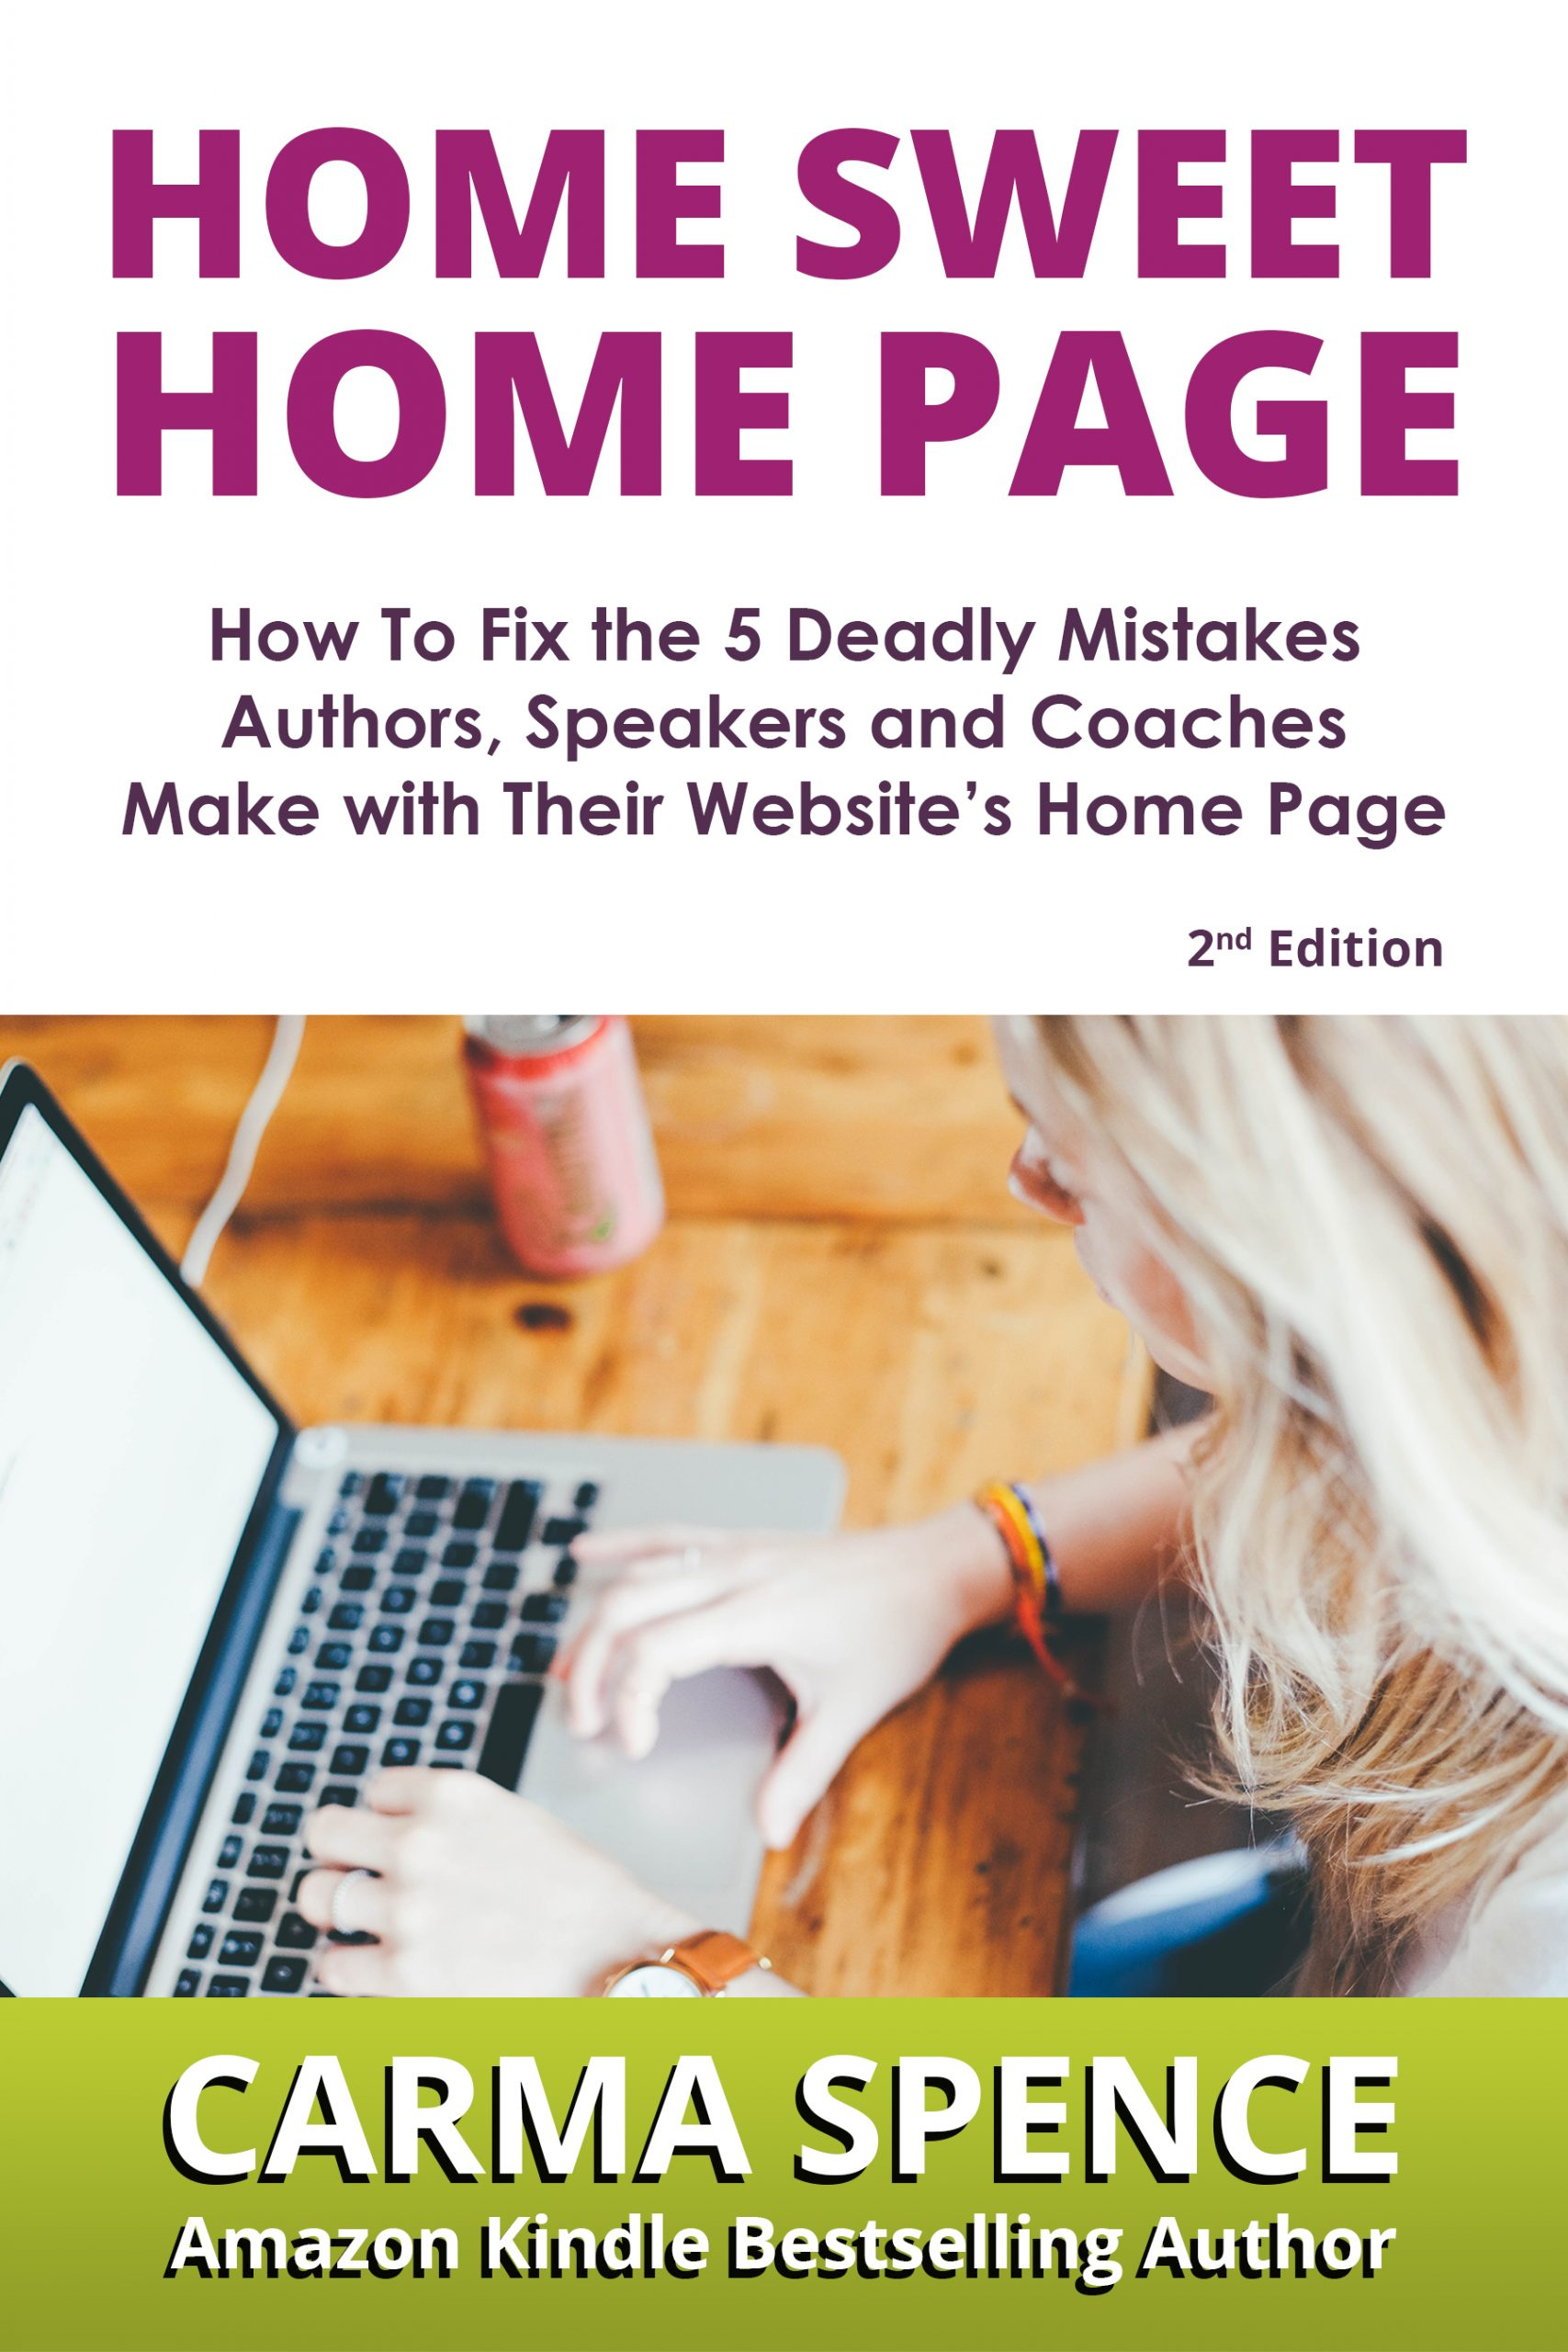 Home Sweet Home Page, 2nd Edition, Cover Concept 6